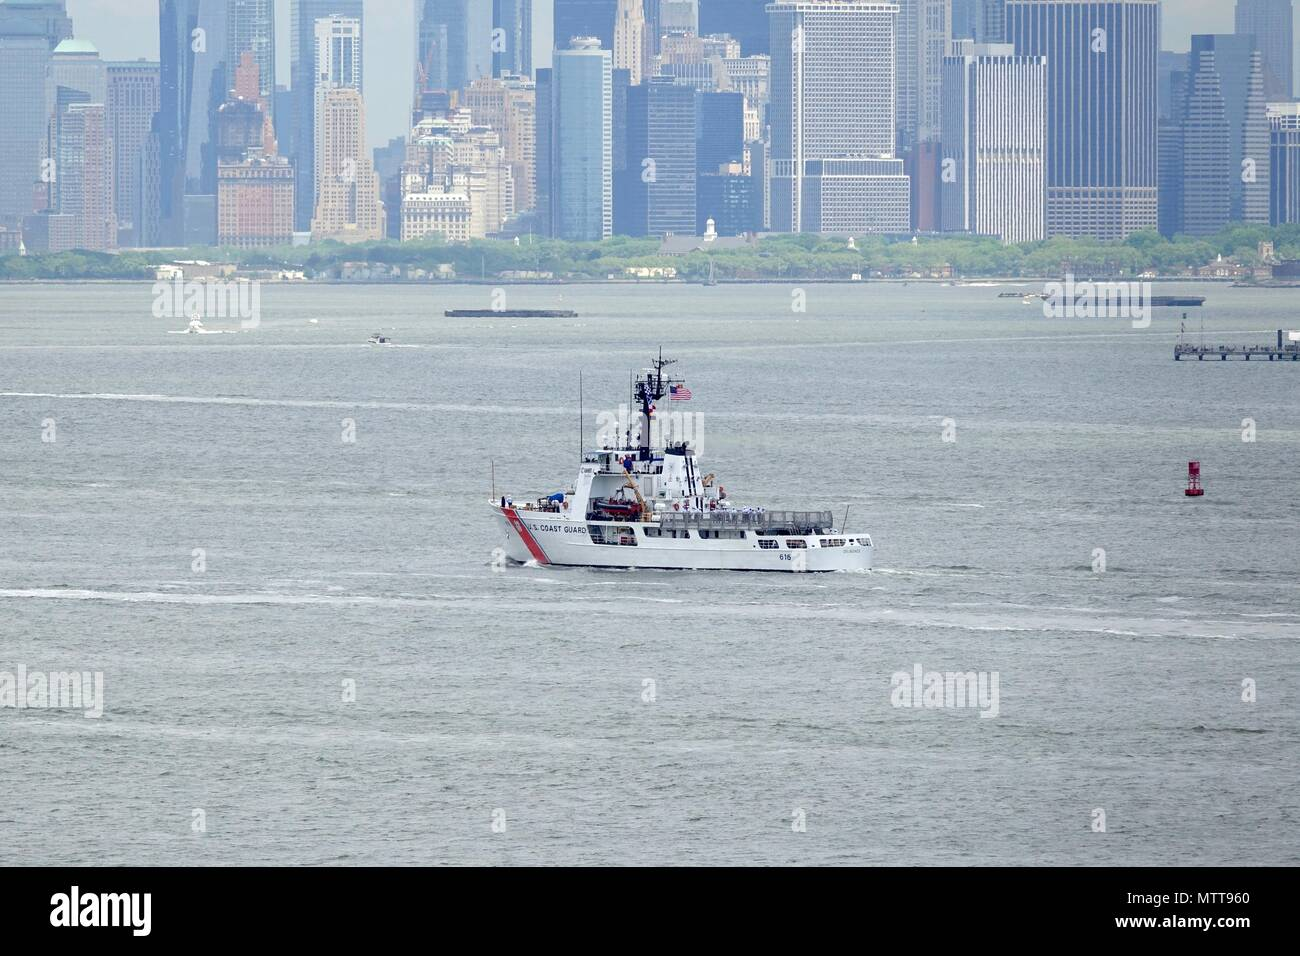 Fleet Of Foot Stock Photos Images Alamy Power Boat Installation Fishing Hunting Kayak Marine Led 210 New York Coast Guard Cutter Diligence A Medium Endurance Based